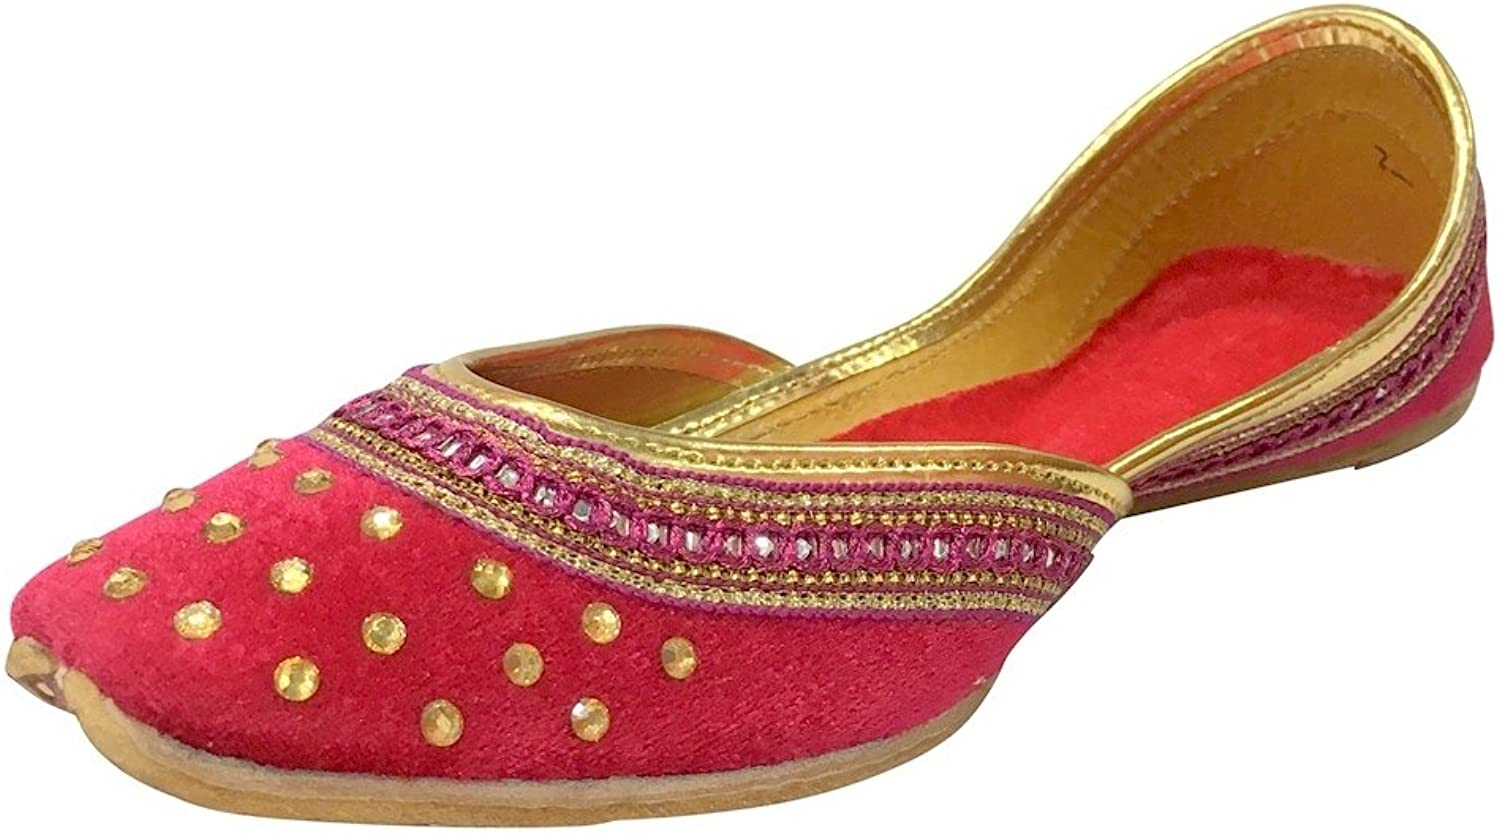 Step n Style Womens Magenta color Khussa shoes Juttis Flat Flipflop Hipi Indian Juti